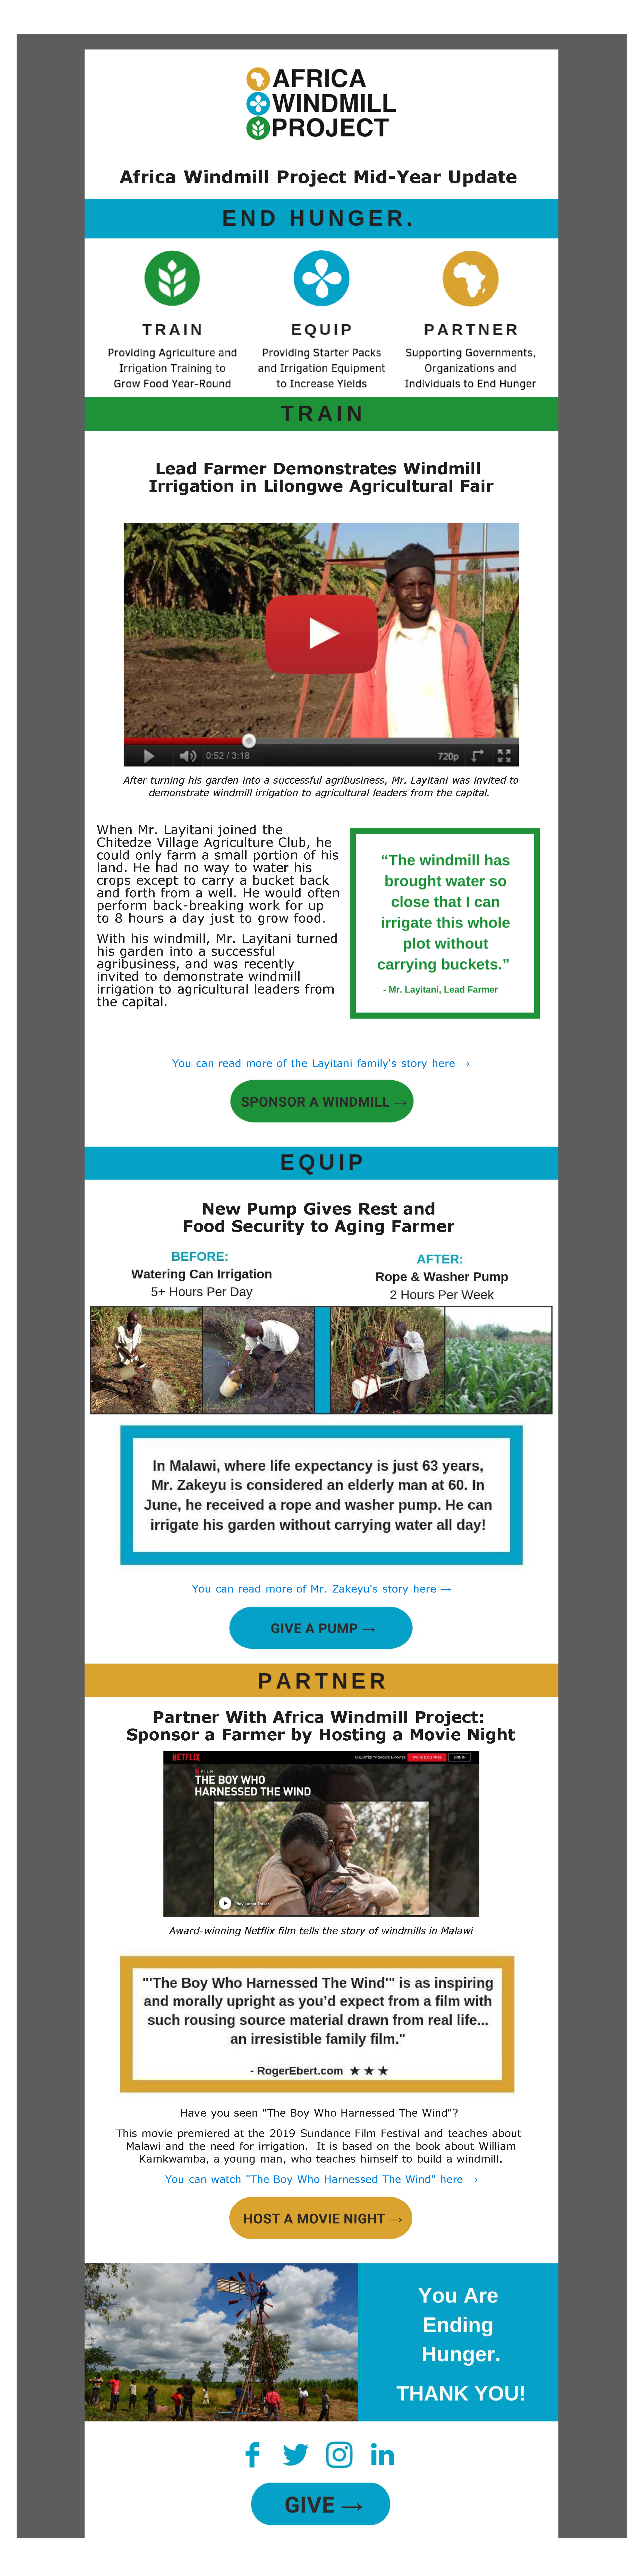 Africa Windmill Project 2019 Mid-Year Update Email.png